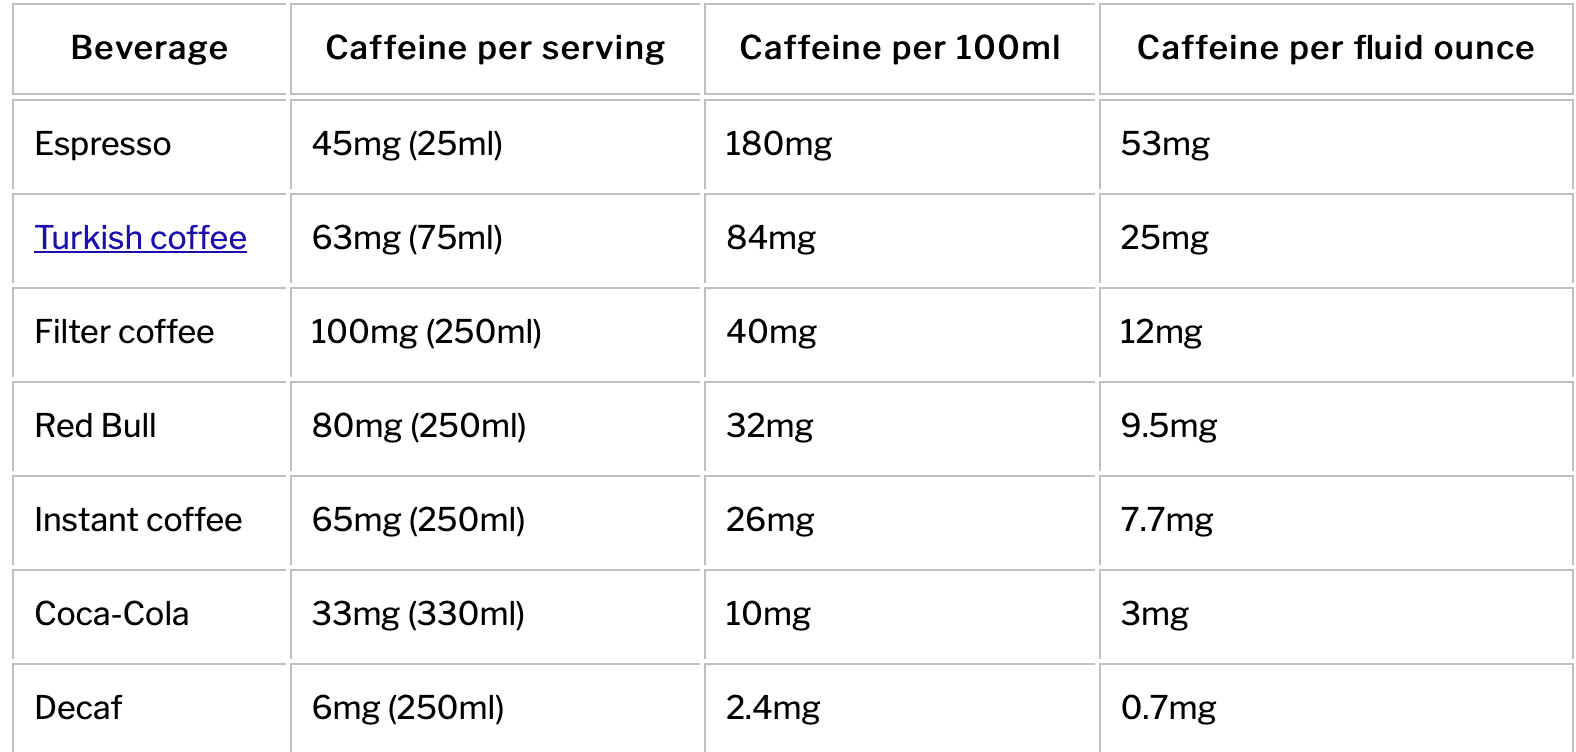 caffieine nutritional facts for drinks